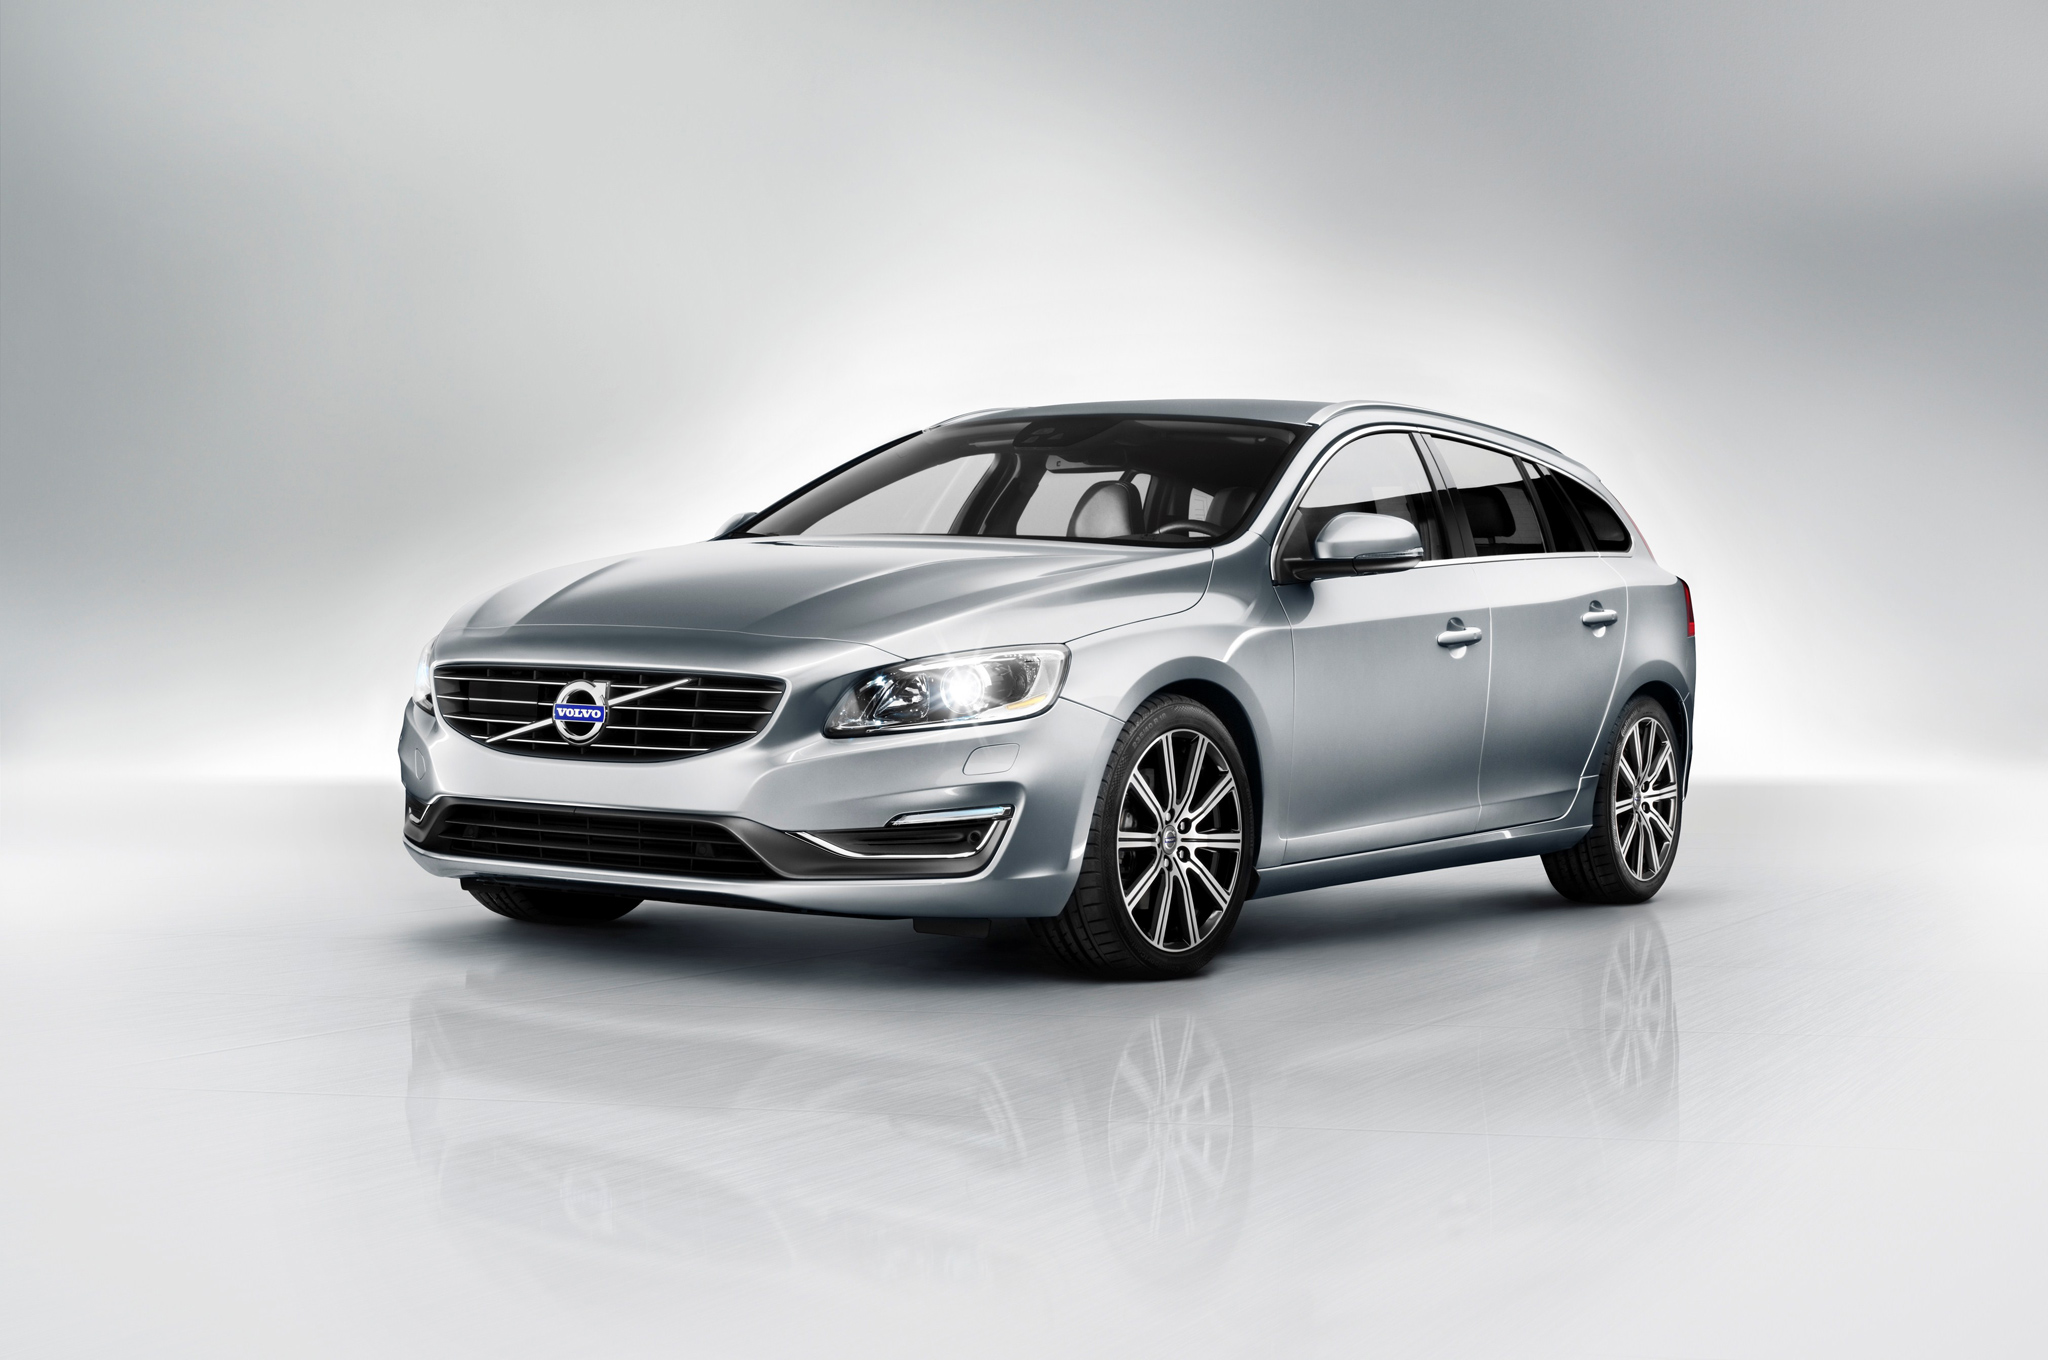 speed coun cars cross top review volvo country